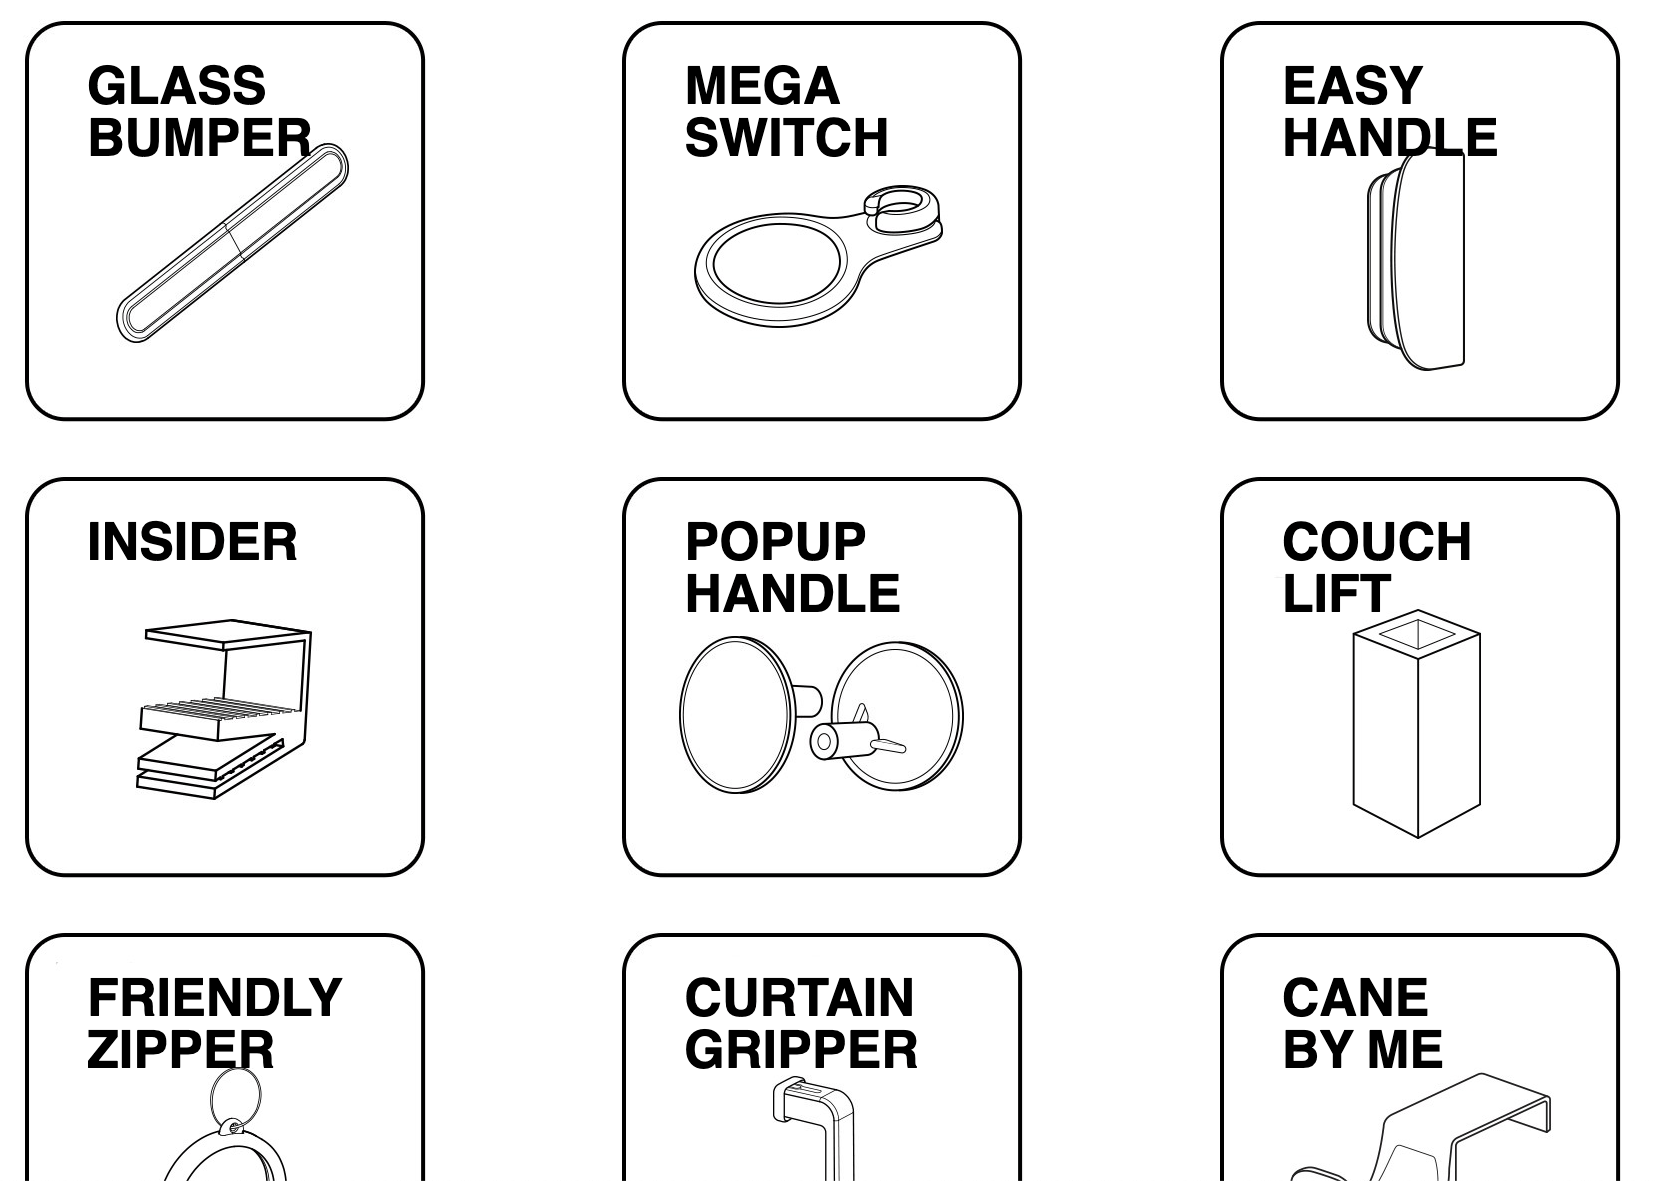 image shows 9 different low tech accessibility products that work with existing ikea products. these are: glass bumper, mega switch, easy handle, insider, pop up handle, couch lift, friendly zipper, curtain zipper, cane by me.